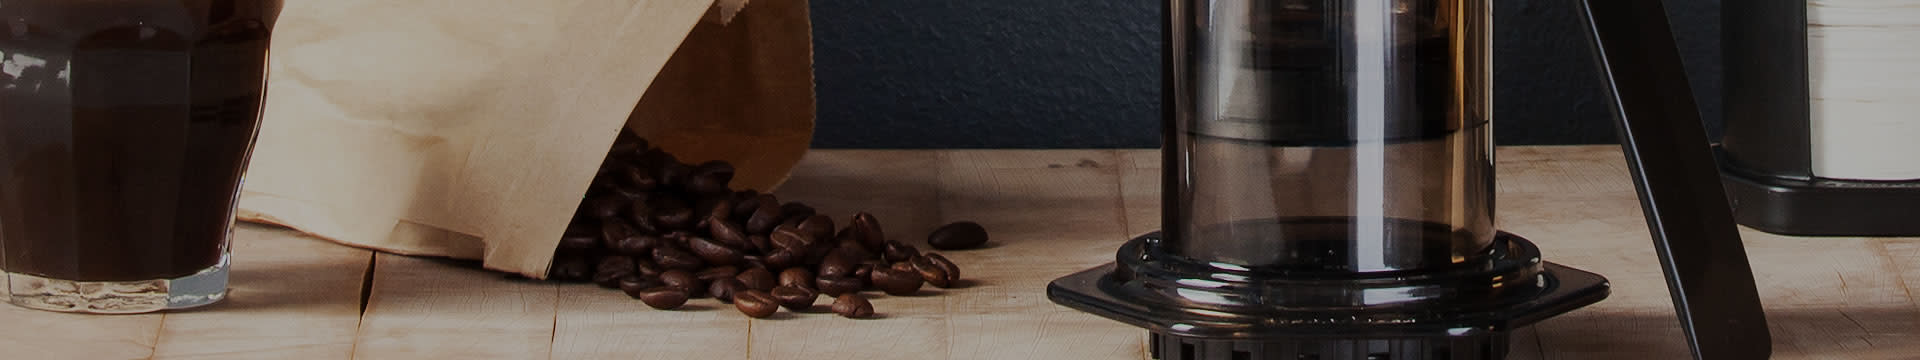 Banner image of AeroPress Coffee Maker